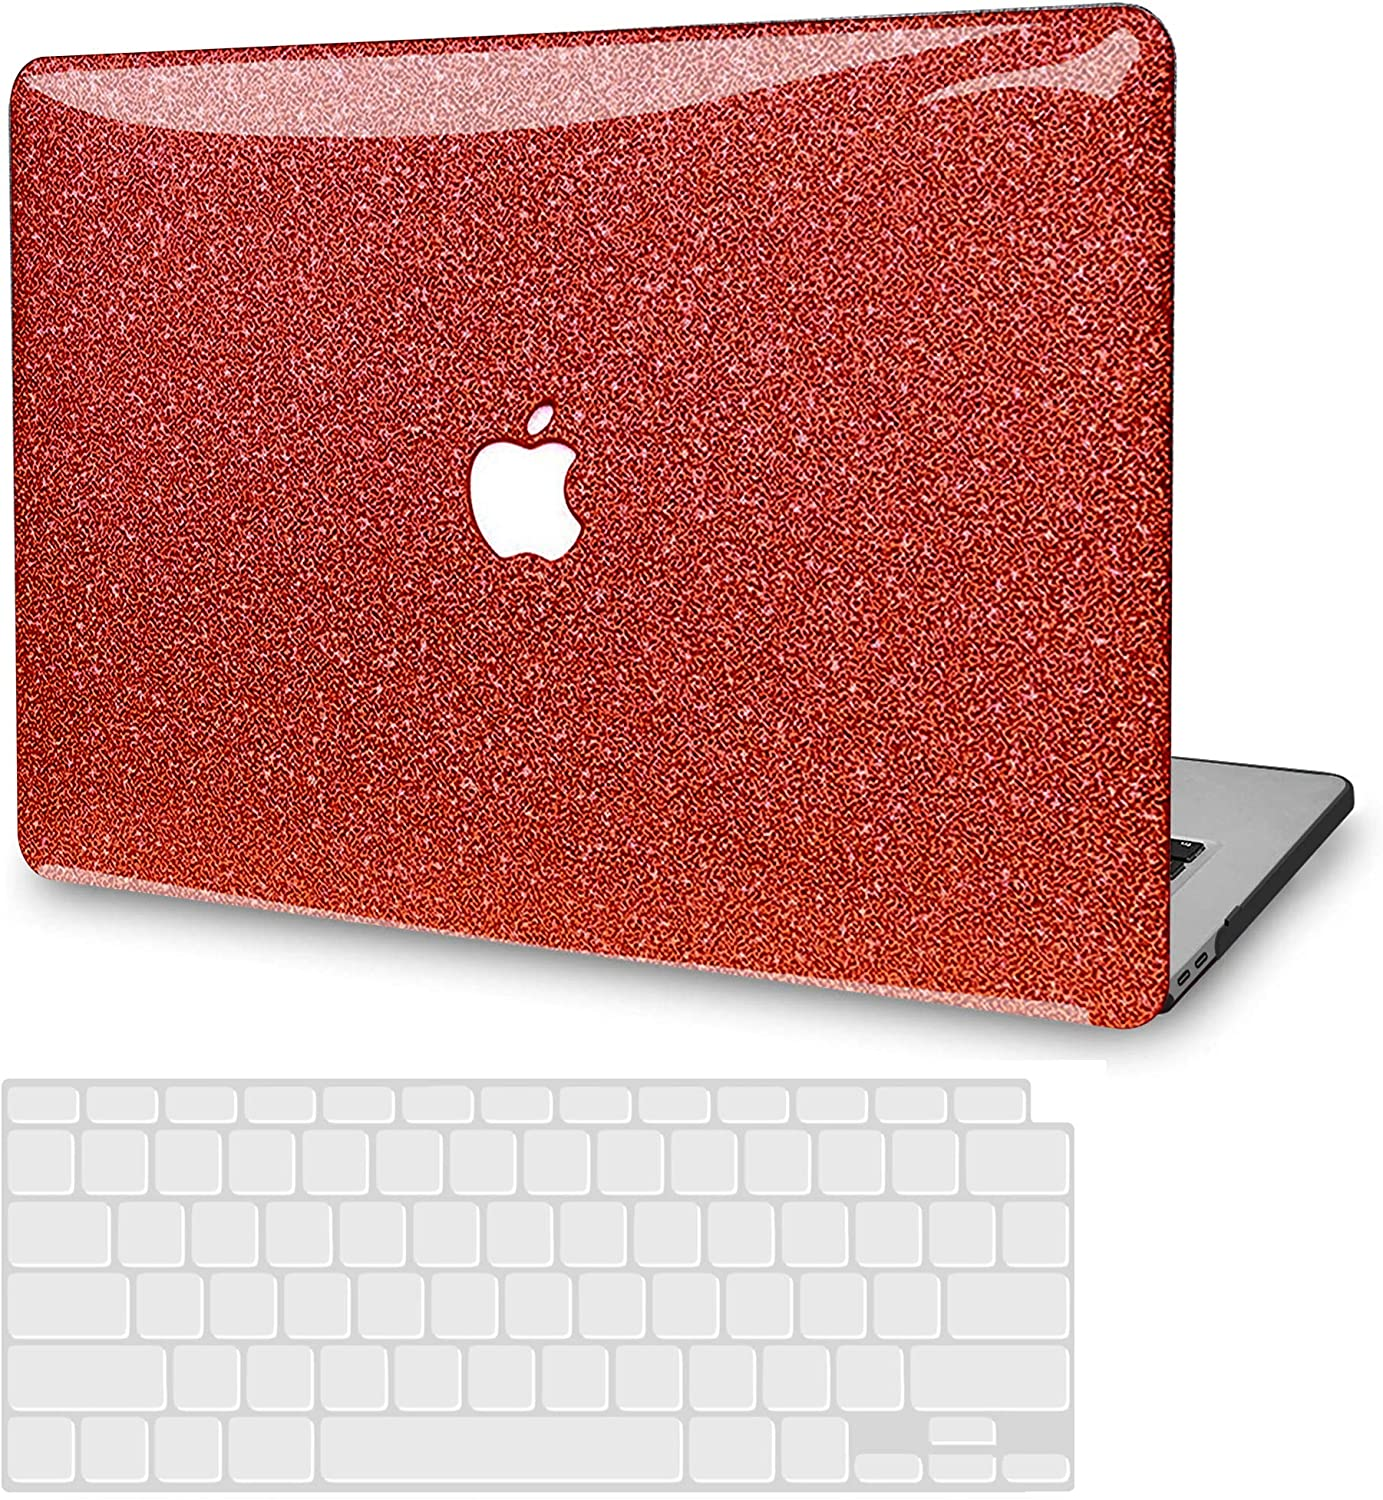 MacBook Pro 13 Inch Case 2019 2018 2017 2016 Release A2159 A1989 A1706 A1708, JGOO Glitter Sparkly Slim Plastic Hard Shell Cover with Keyboard Cover for Apple Mac Pro 13 with/Without Touch Bar, Red